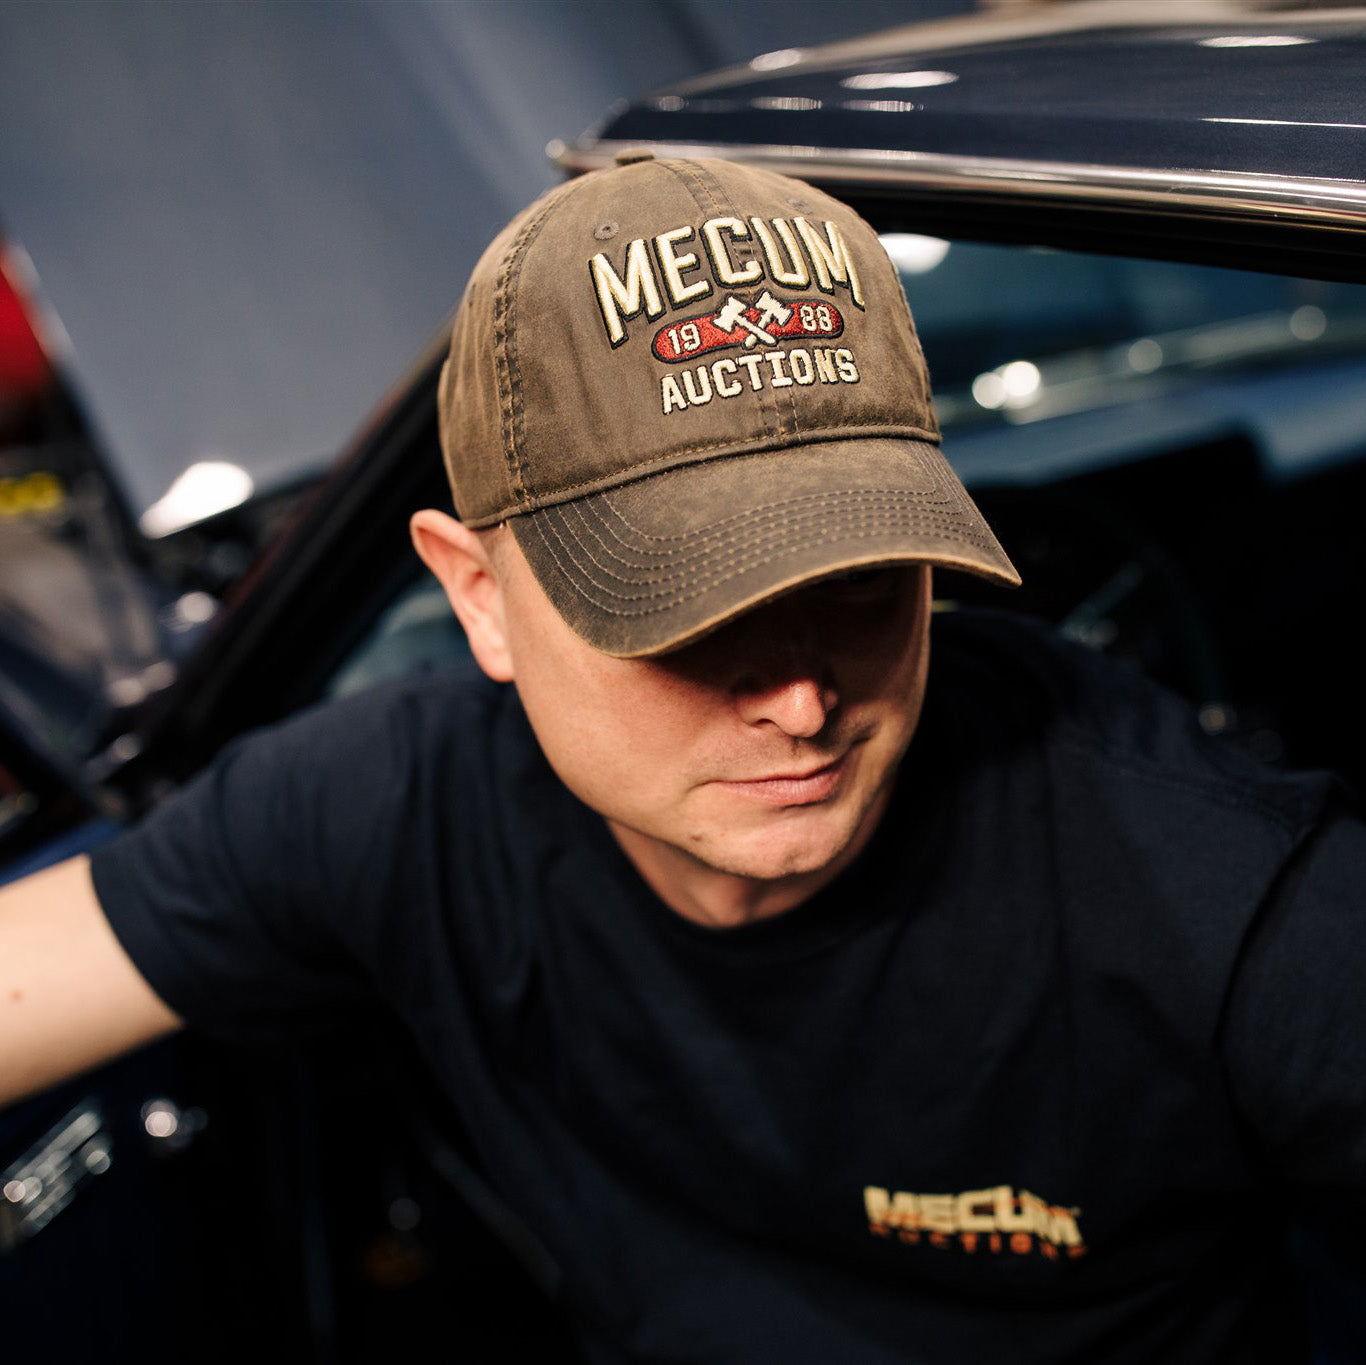 Man wearing 2020 Mecum Men's Brown Waxed 1988 Hat